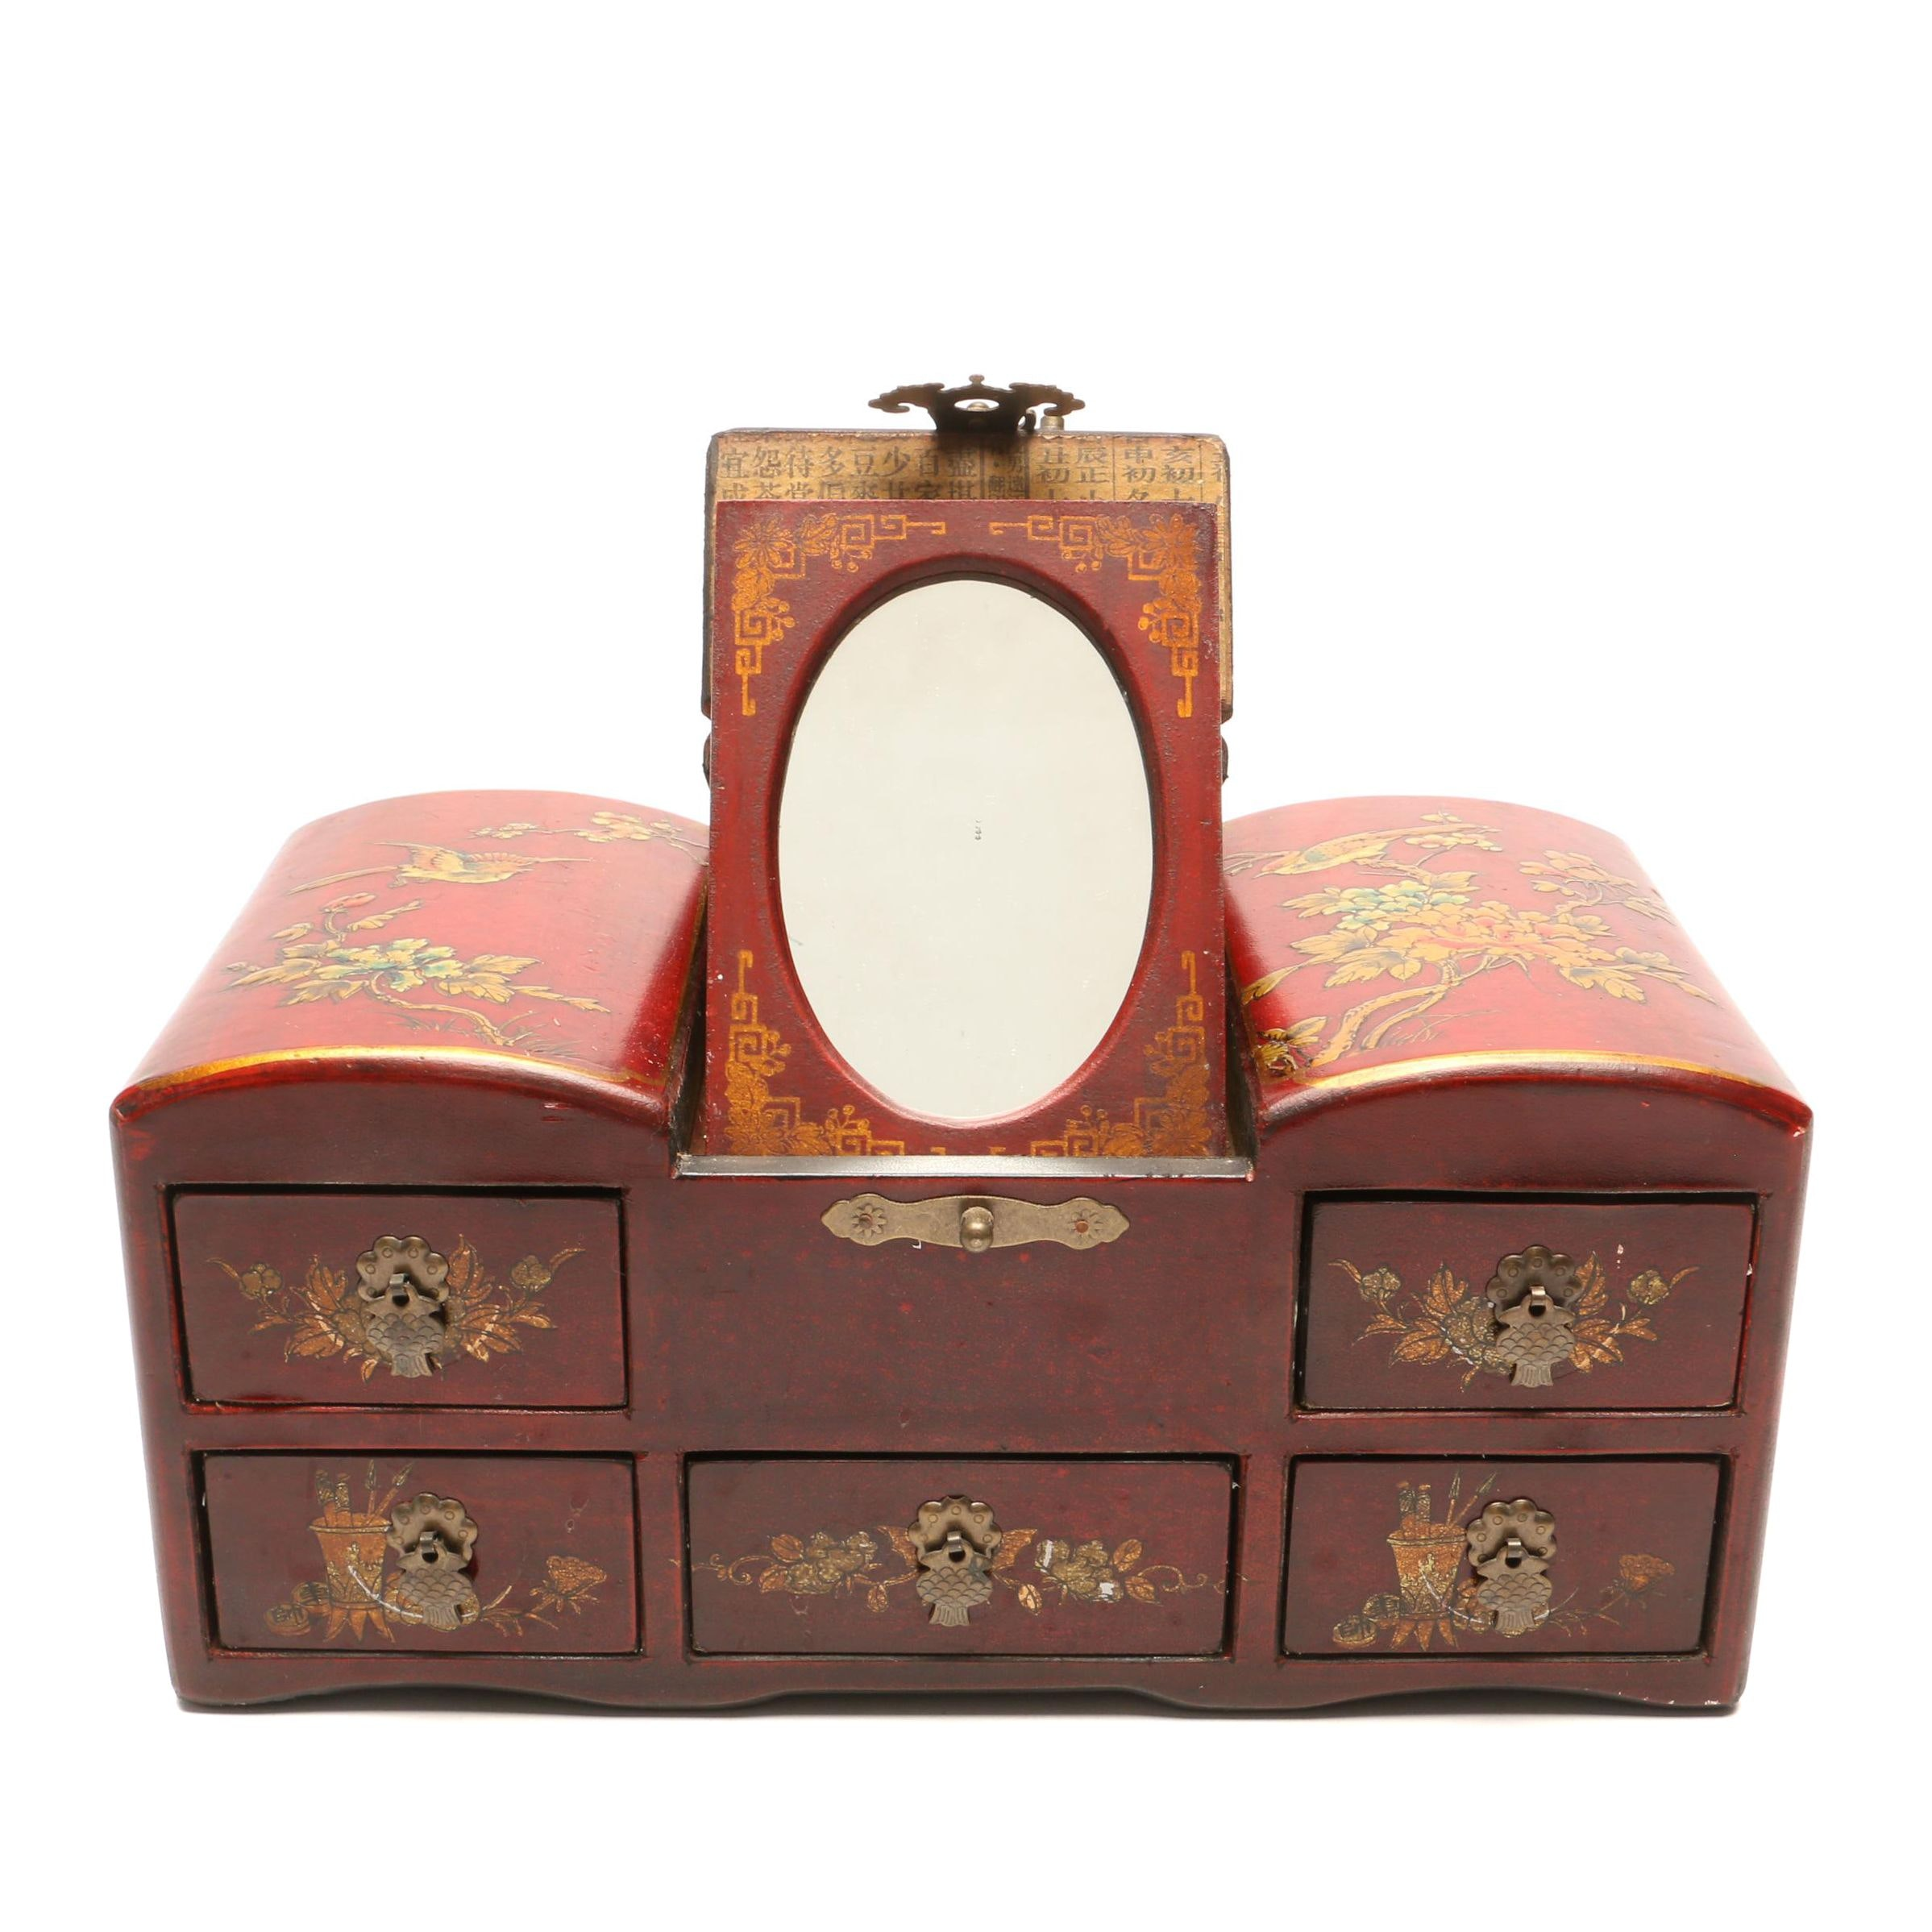 Chinese Painted Wooden Jewelry Box with Mirror